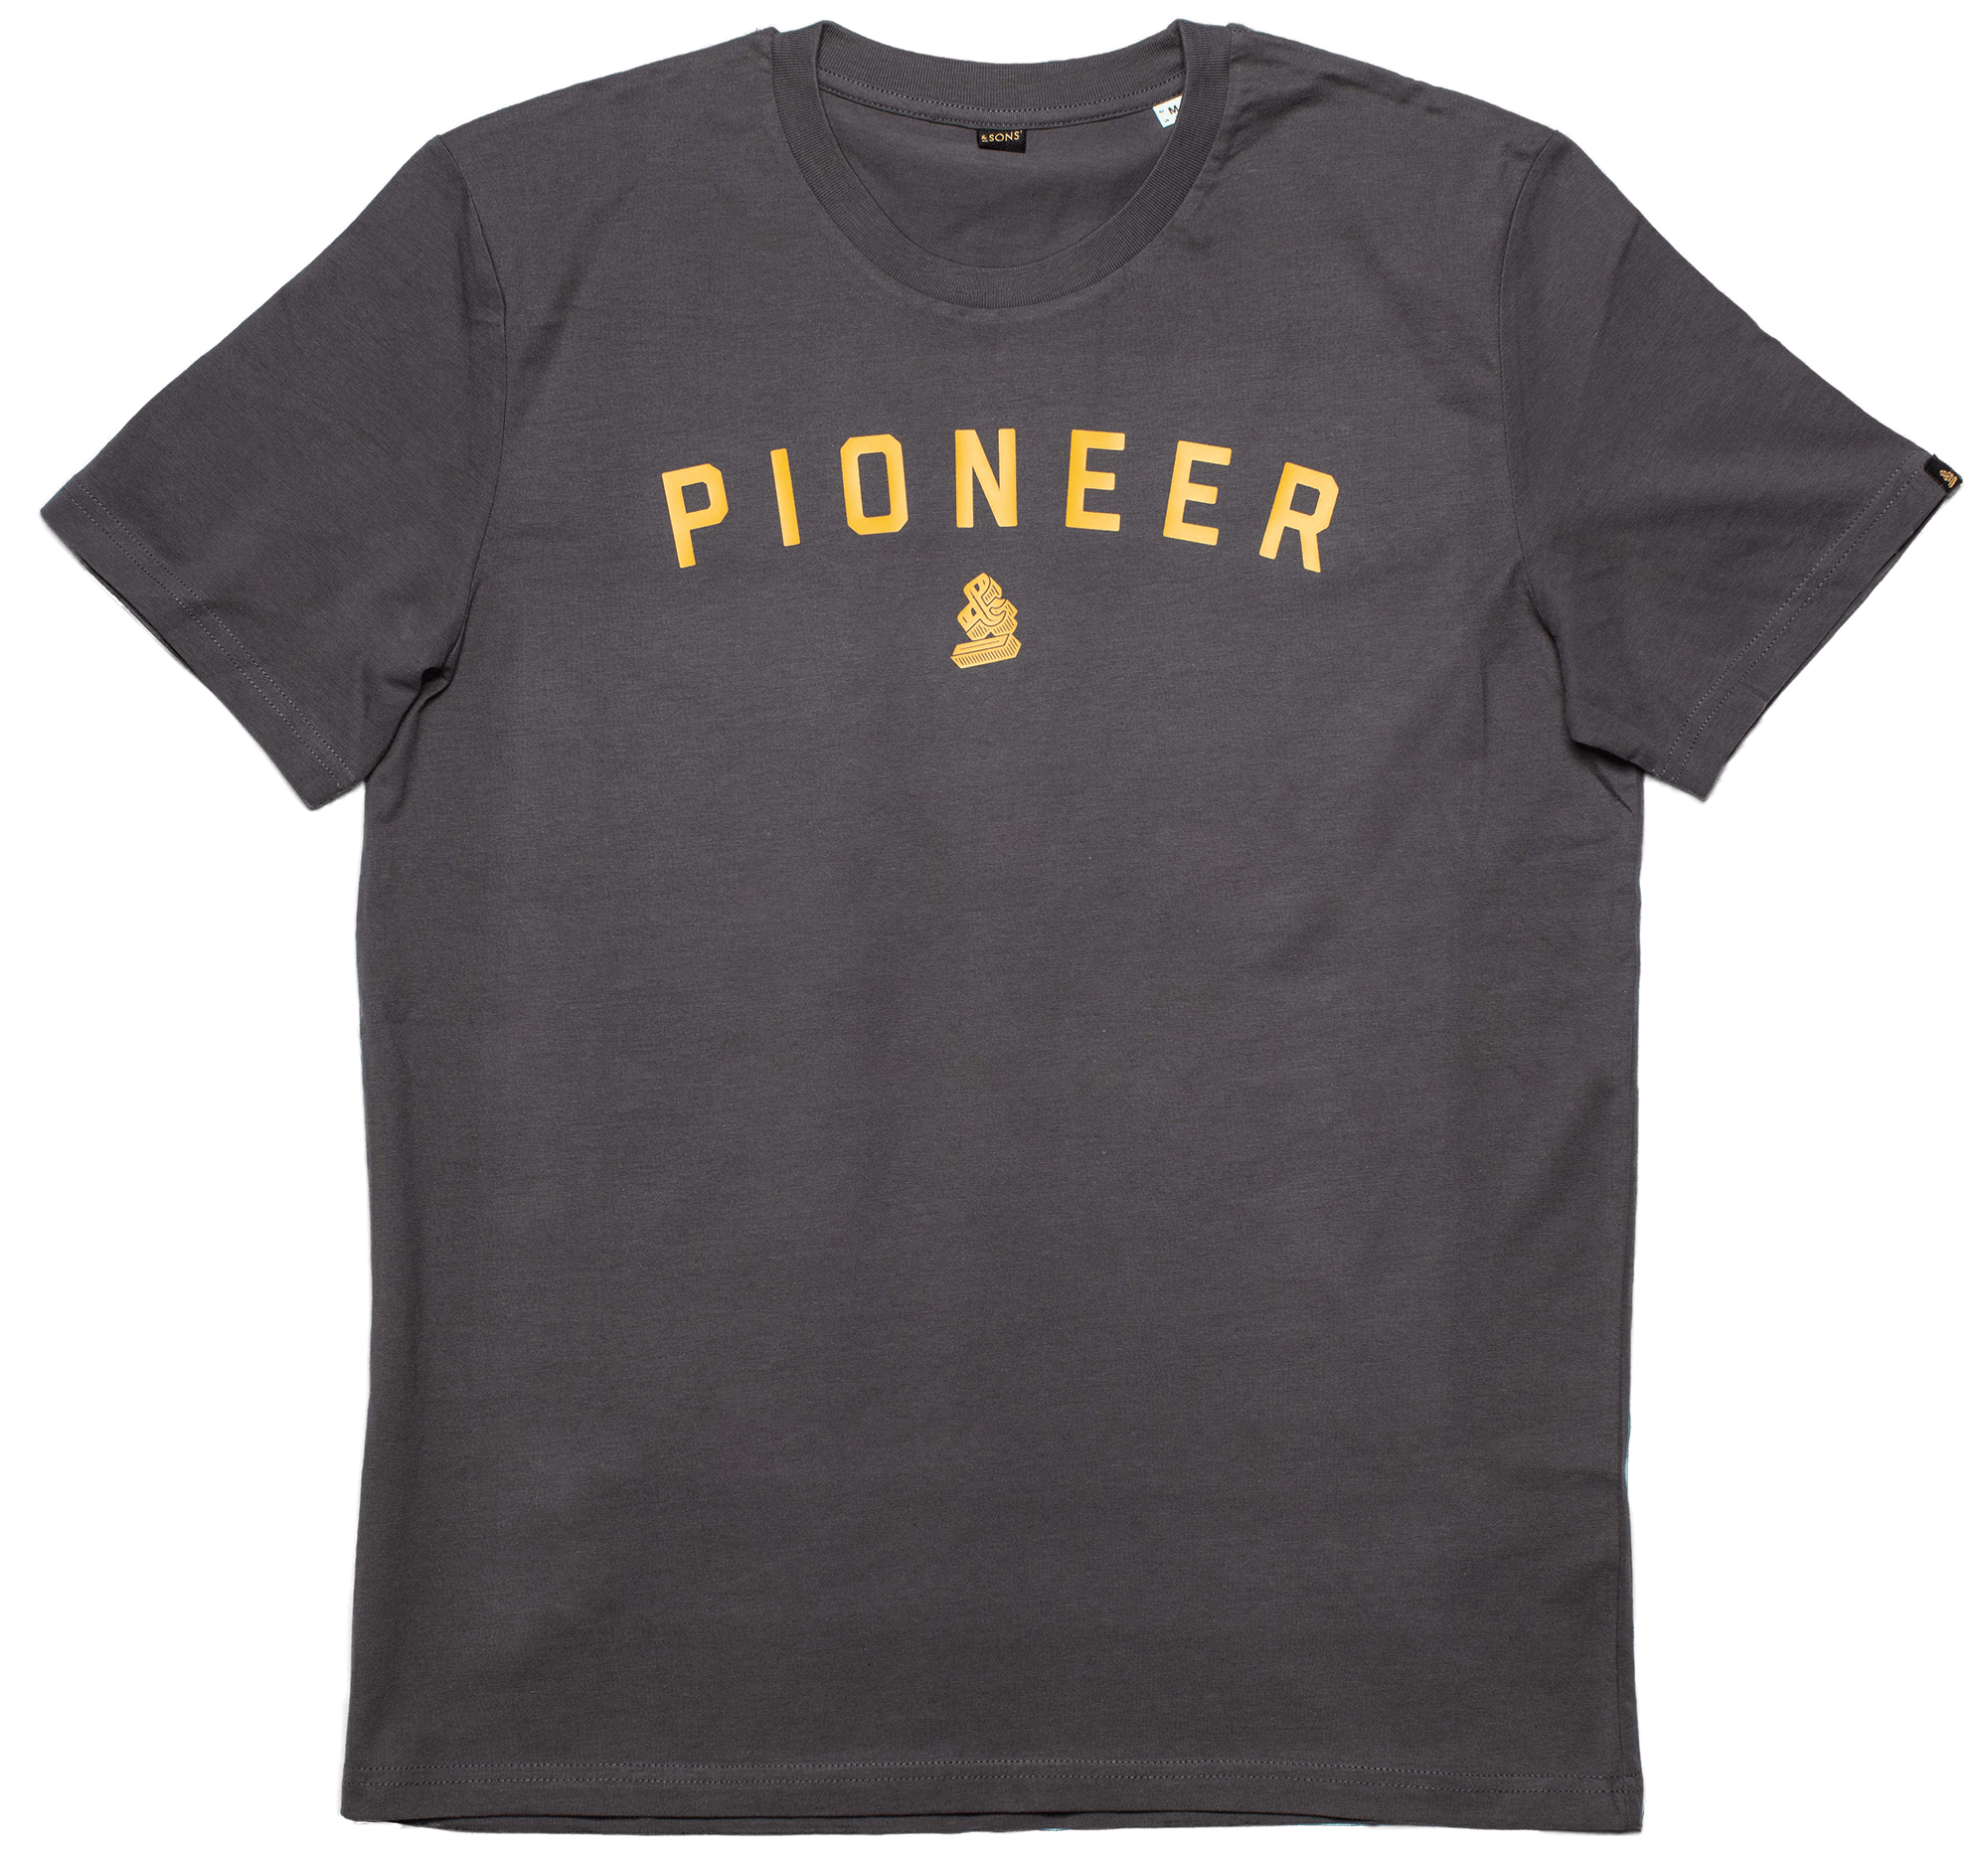 PIONEER &SONS T-Shirt - Charcoal Shirts &sonsclothing